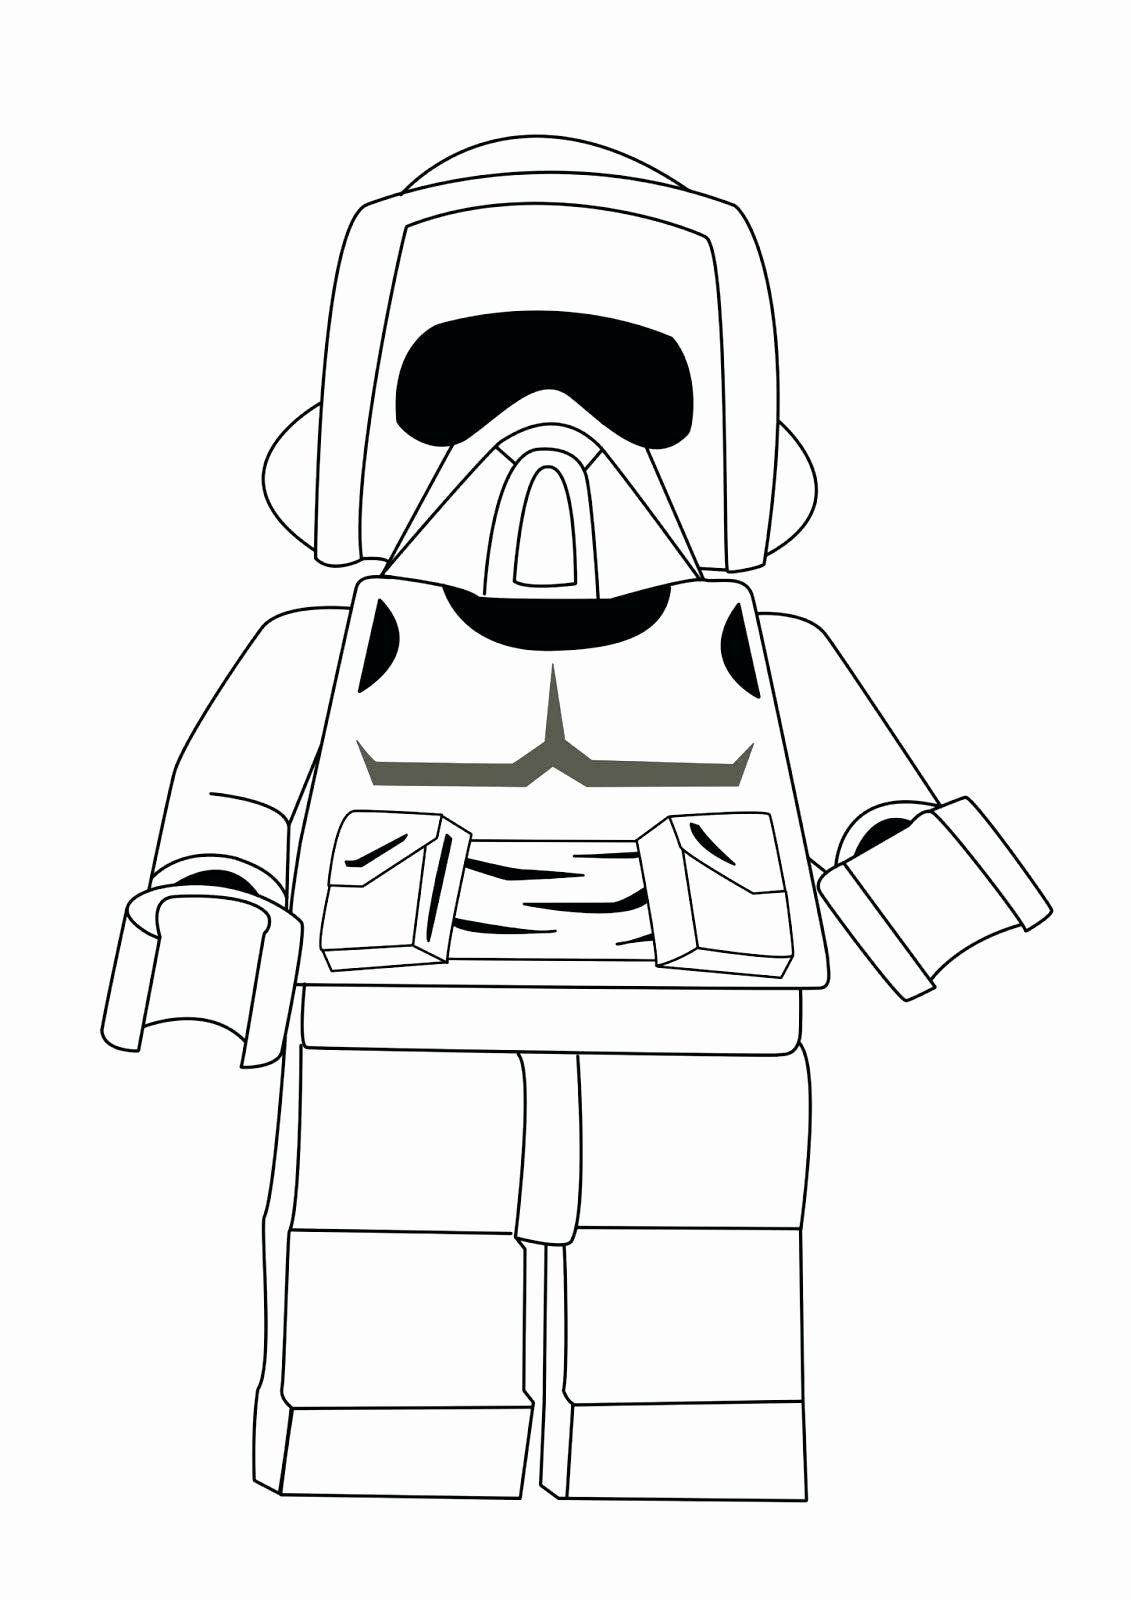 Star Wars Kids Coloring Pages Lovely Lego Star Wars Luke Skywalker Coloring Pages Cortexcolor Darth Vader Gambar